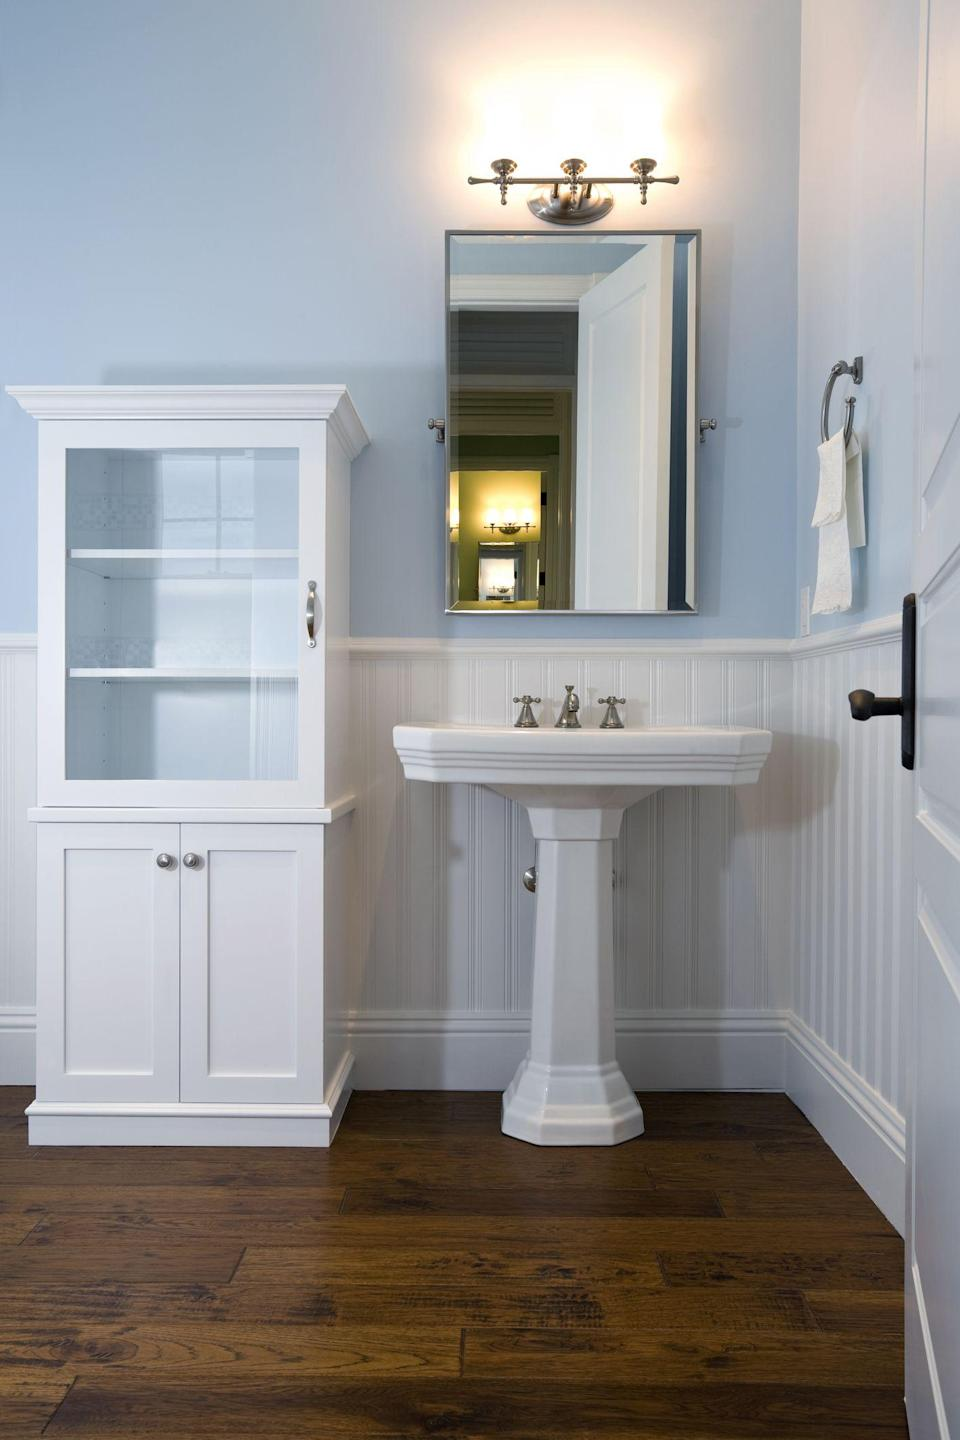 10 Perfect Pedestal Sinks for a Sophisticated Bathroom